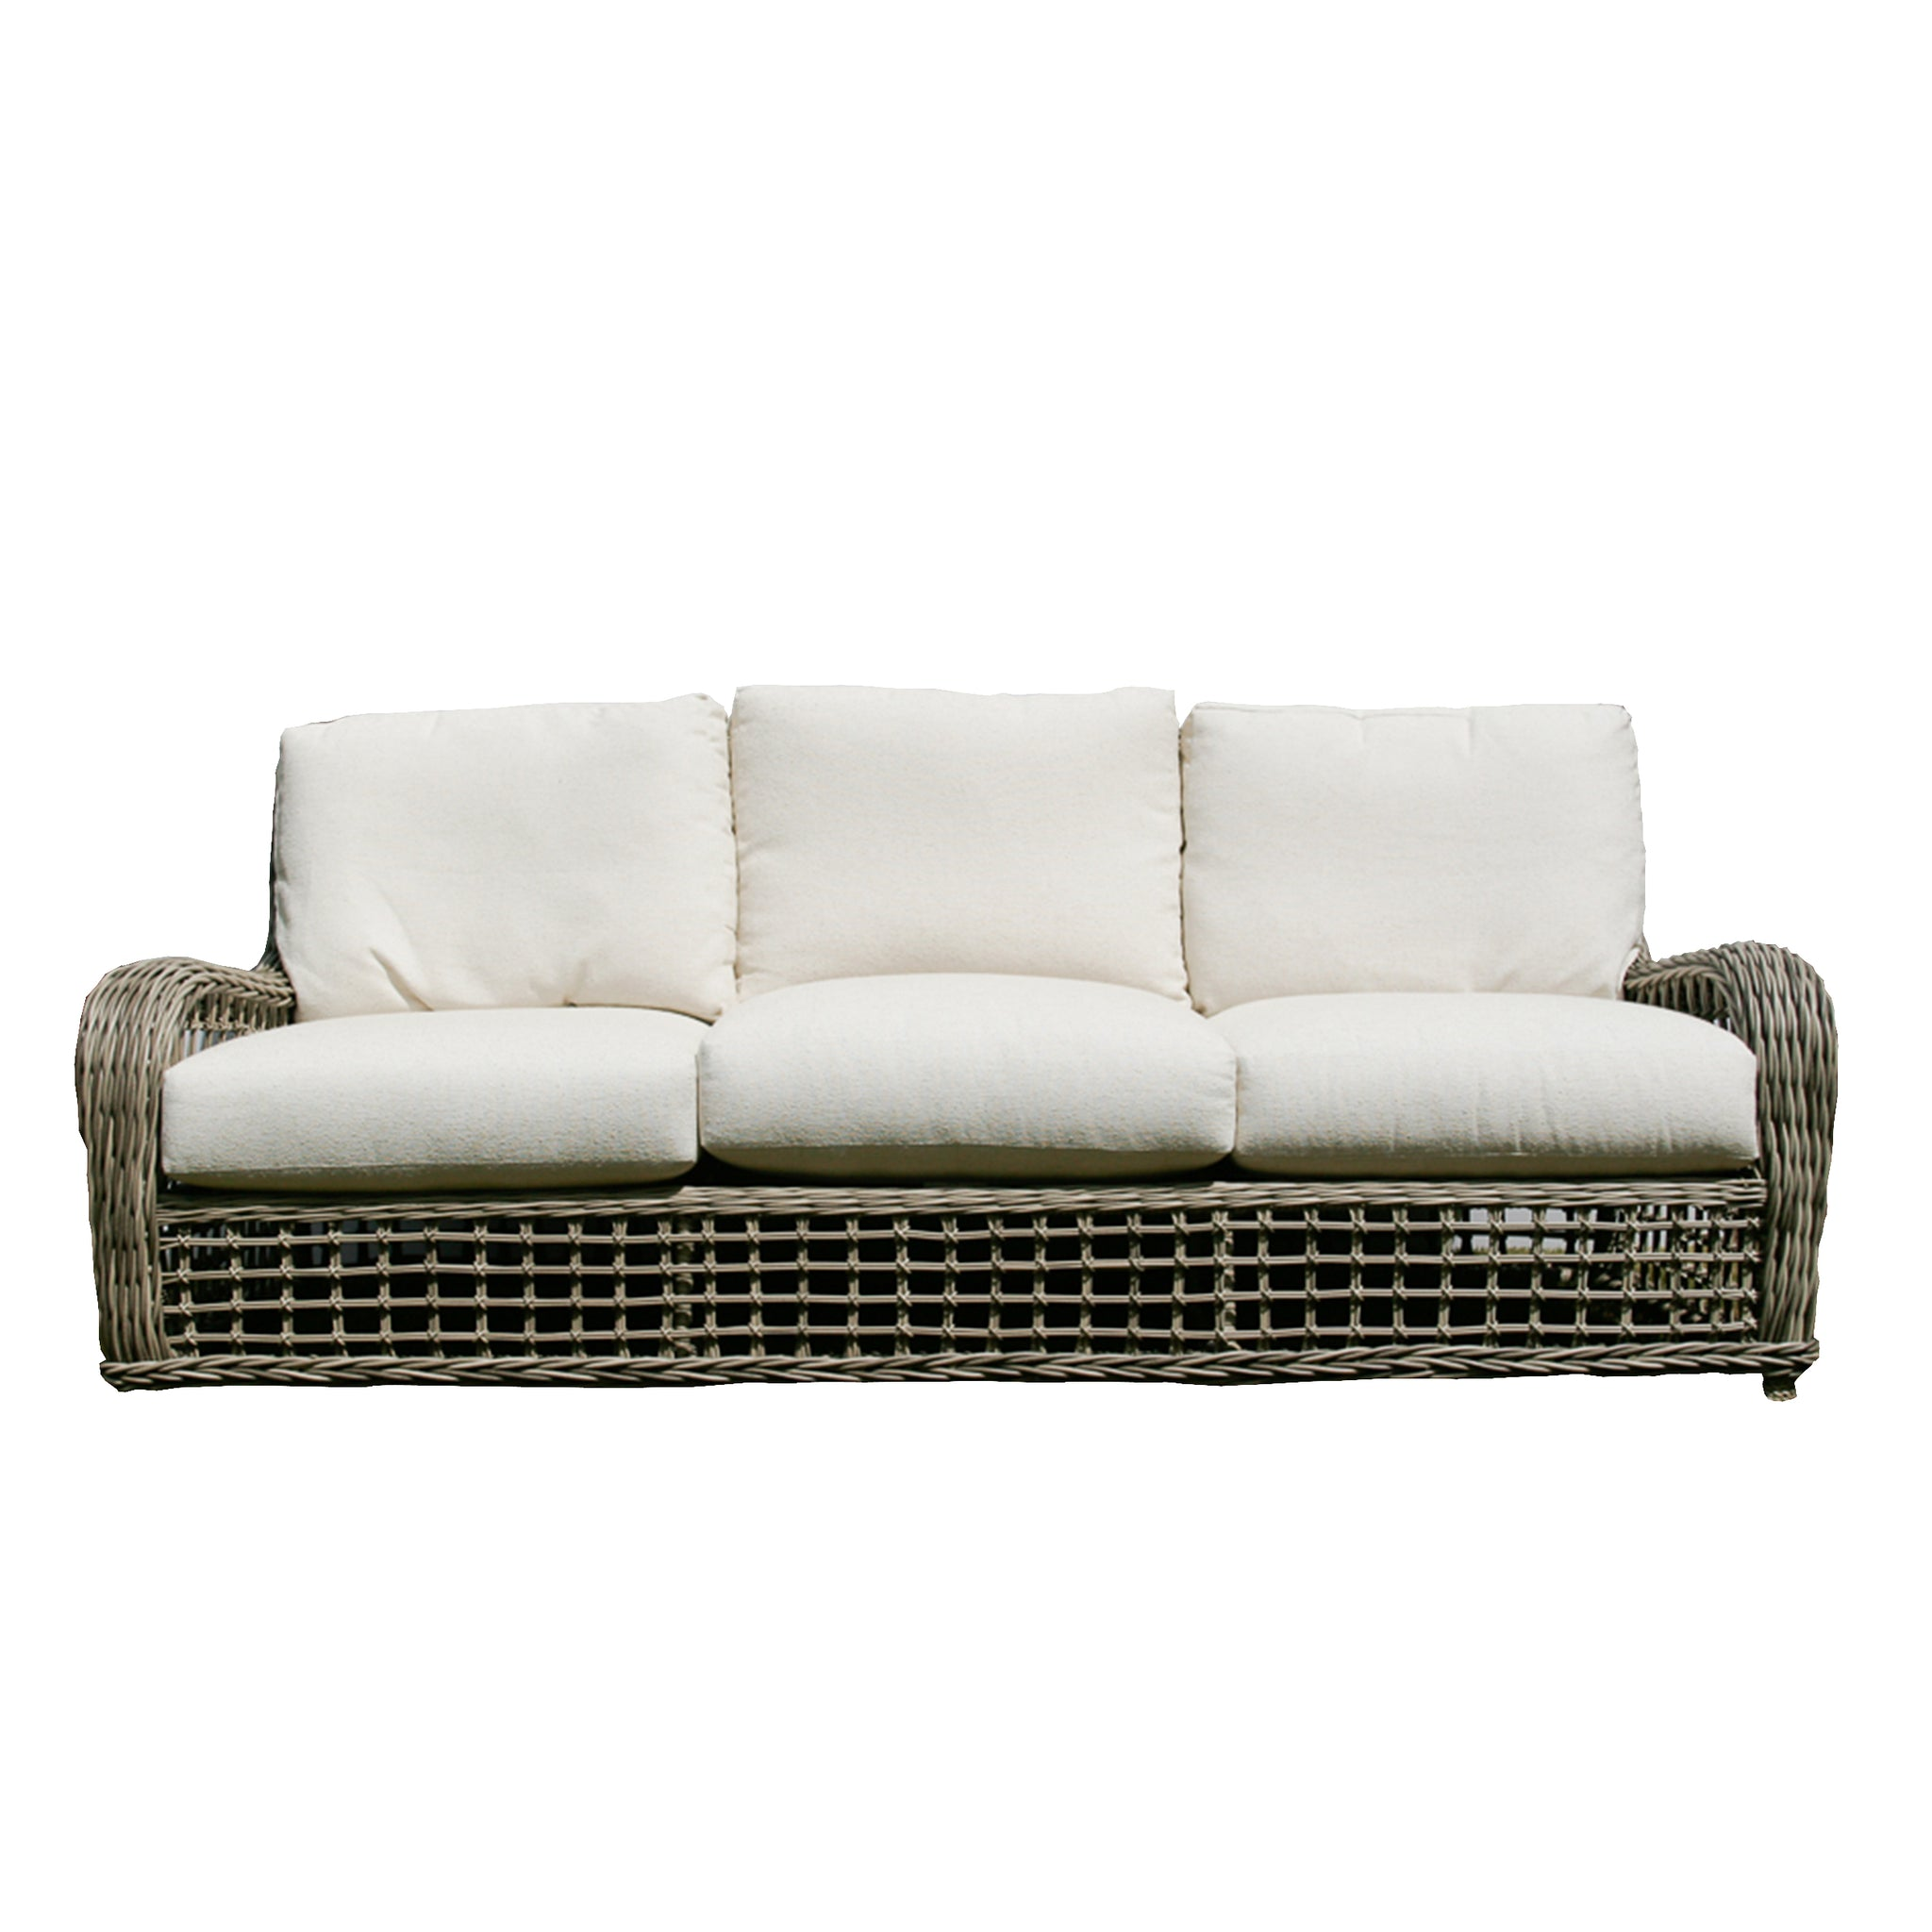 Moraya Bay Sofa by Lane Venture in Oyster finish upholstered in Rumor Vanilla Sunbrella fabric